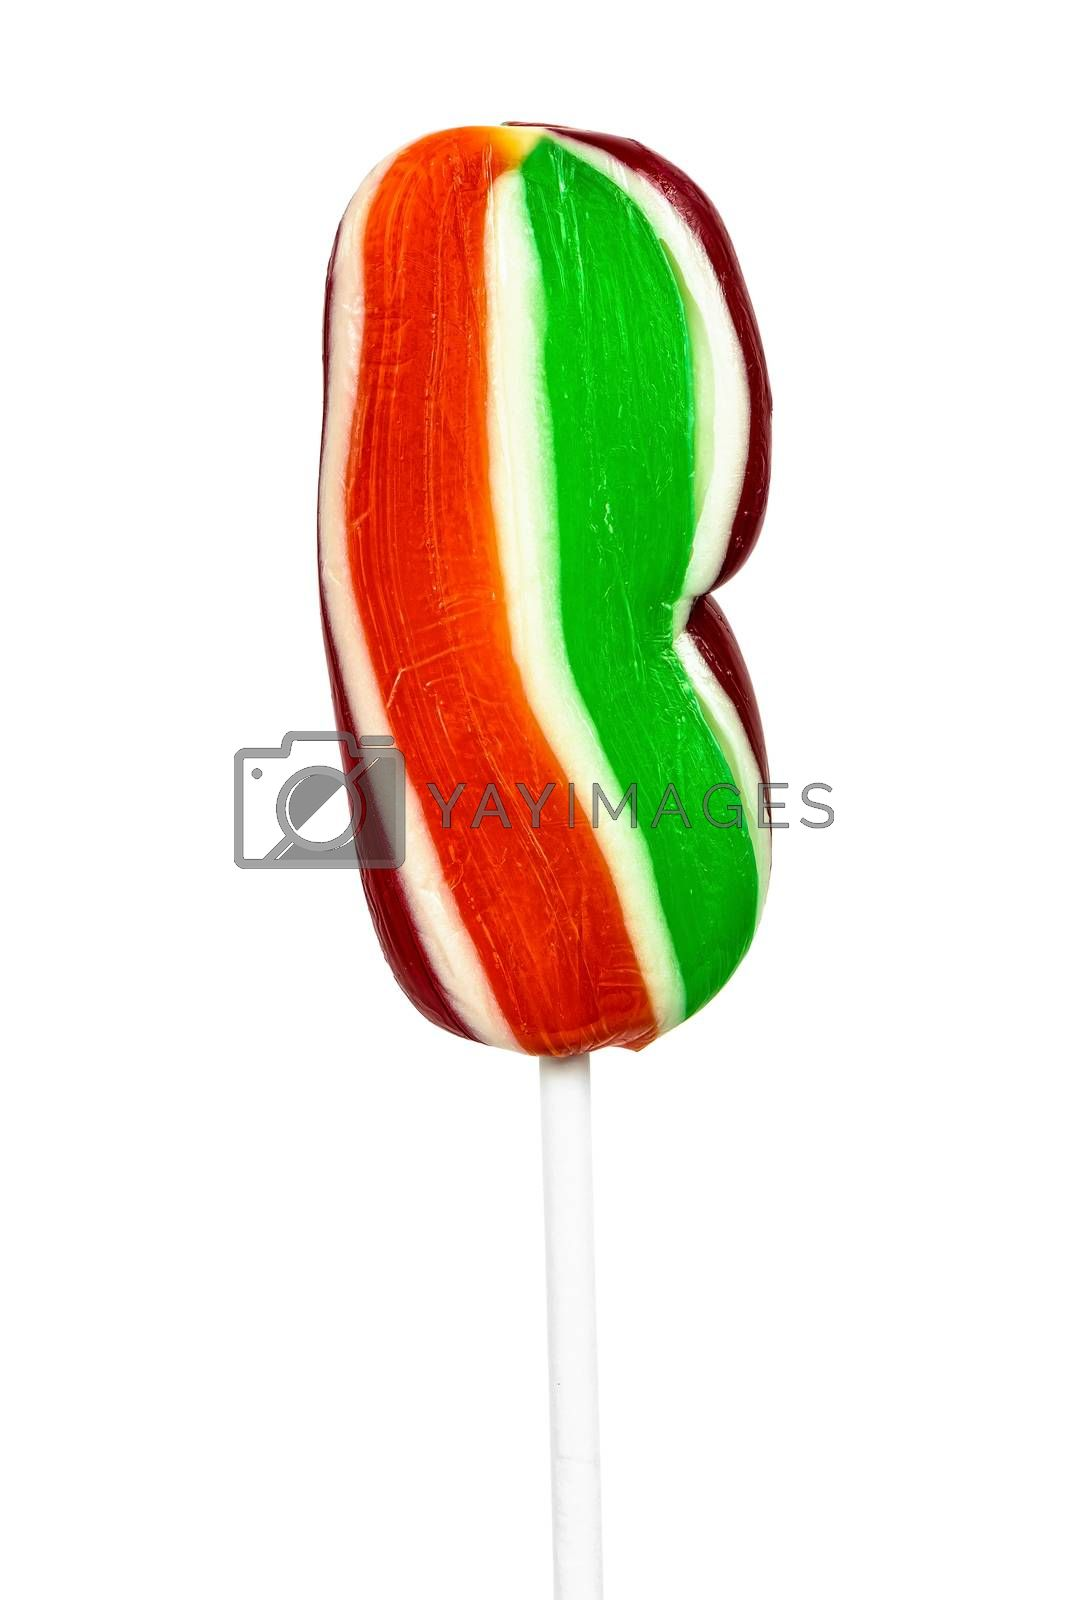 Royalty free image of Colorful lollipop on white background by mkos83